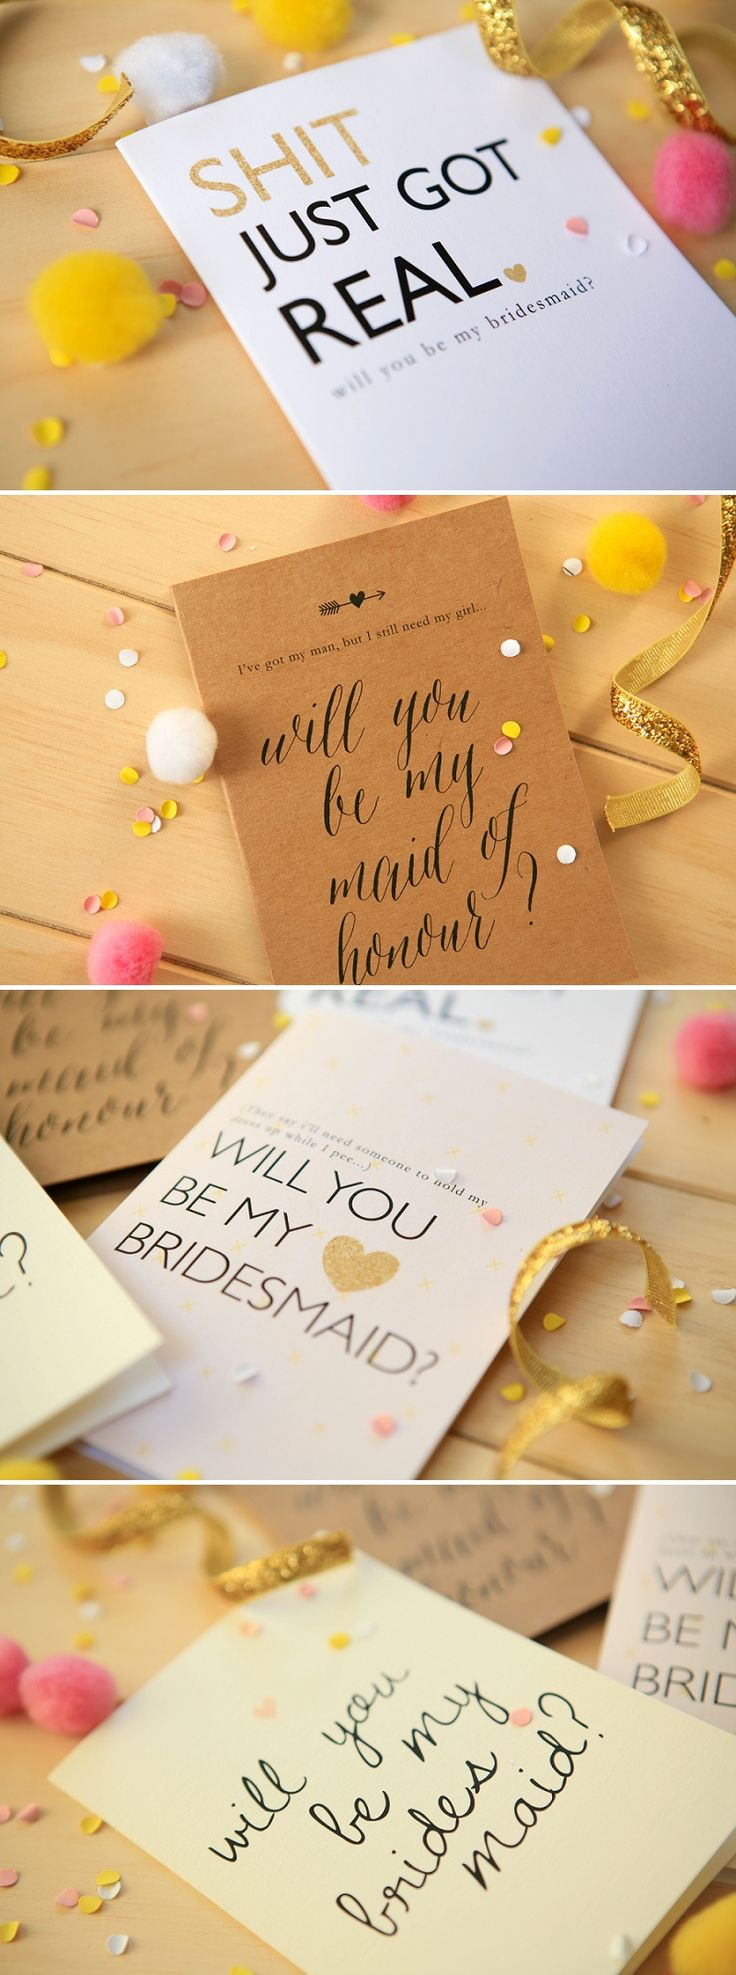 jordan and release 2015 FREE Will you be my bridesmaid printables